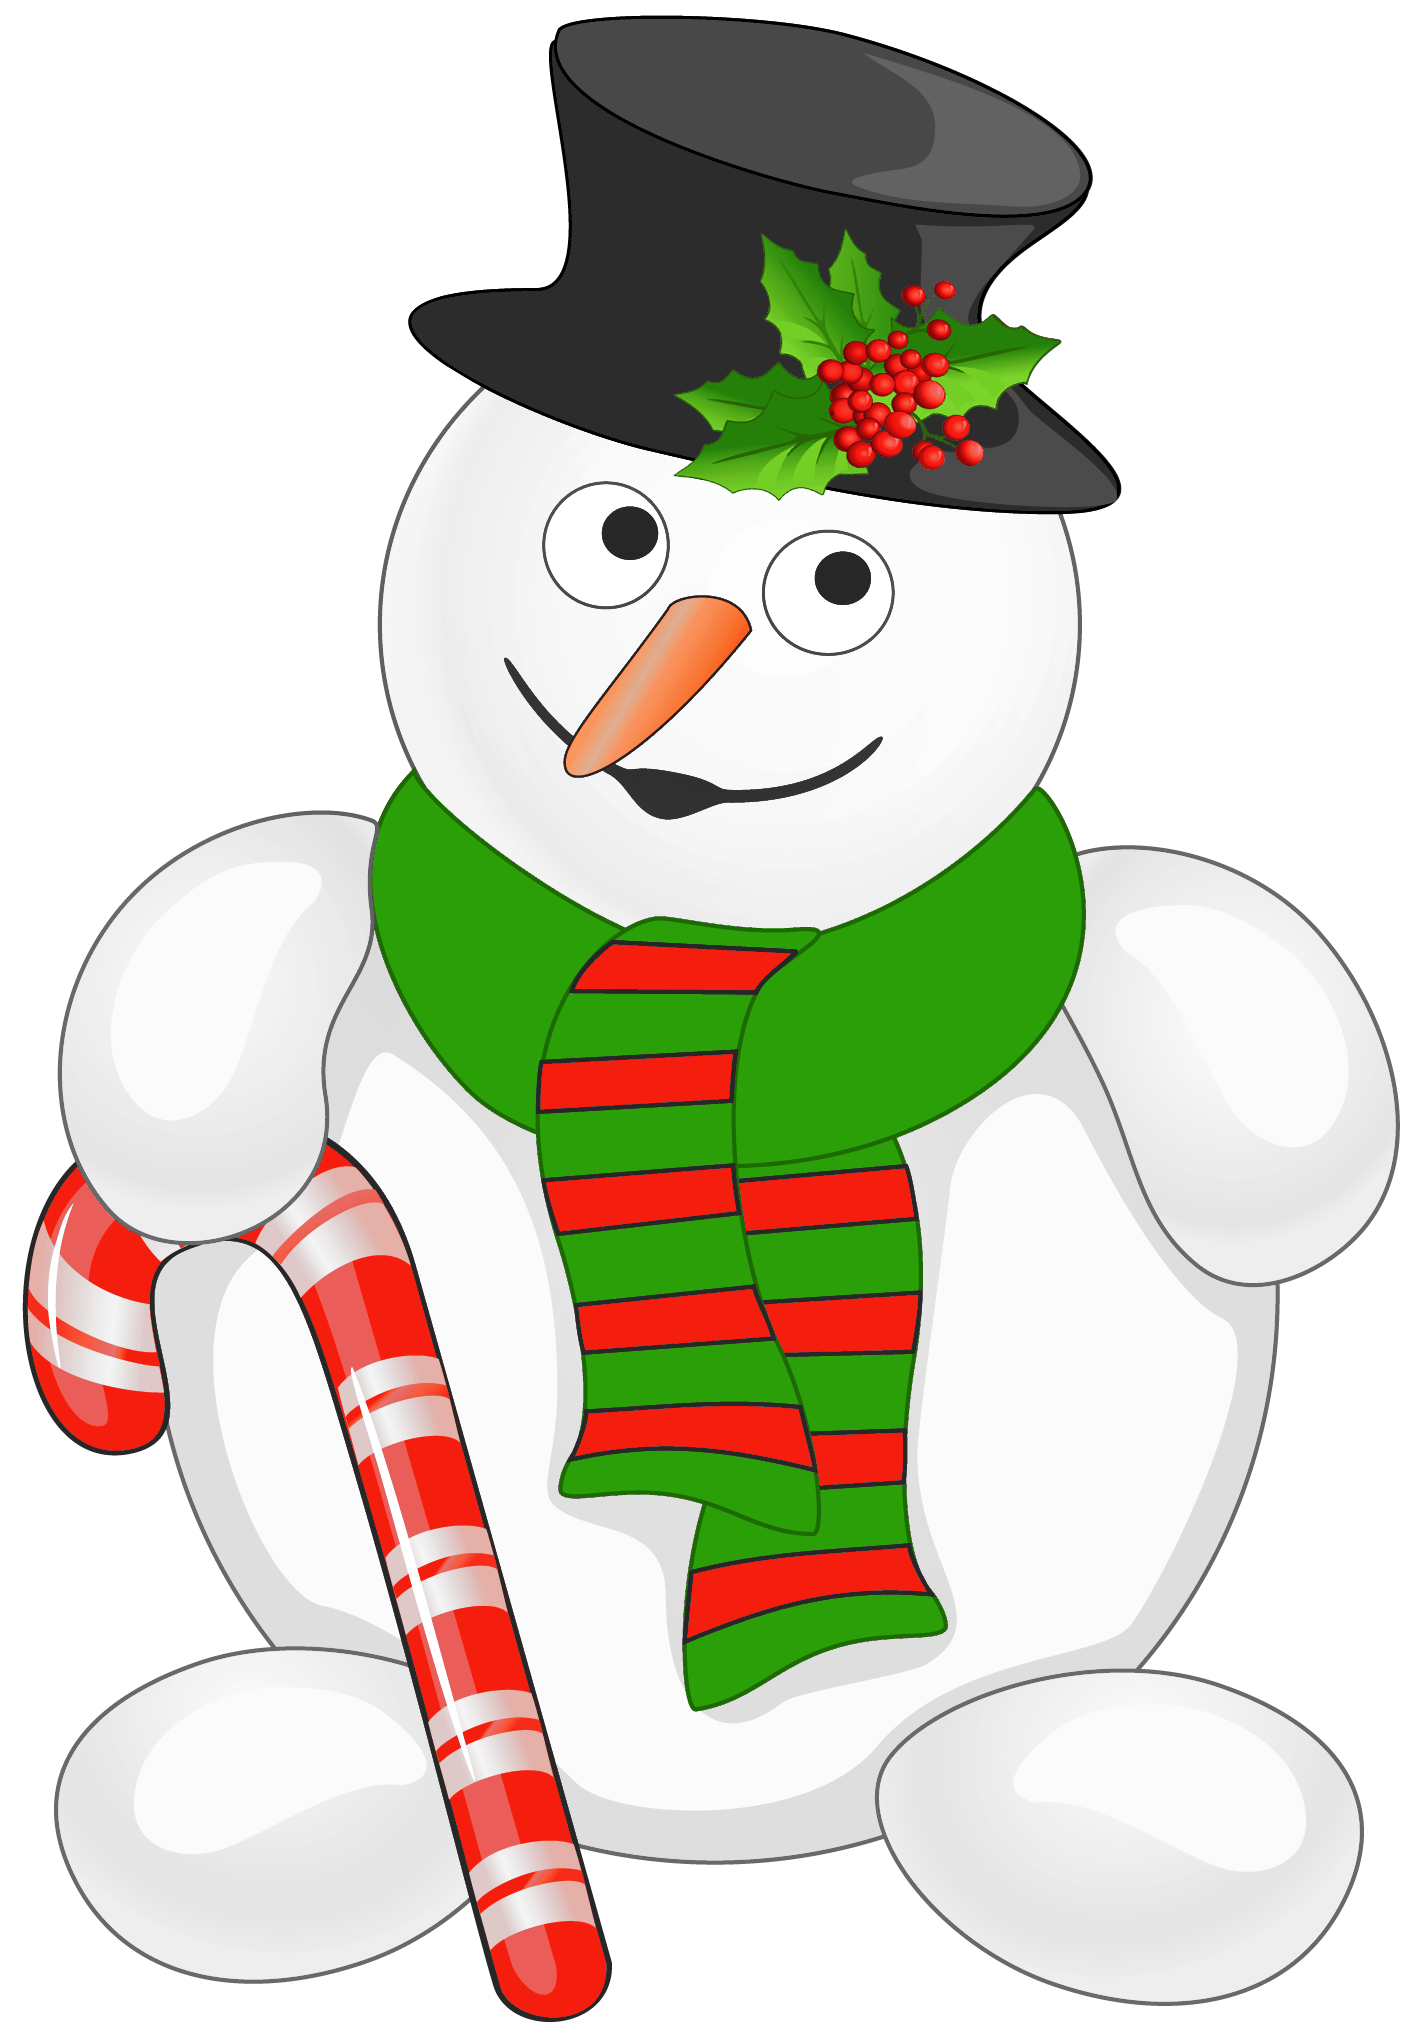 Tree clipart candy. Snowman with cane png